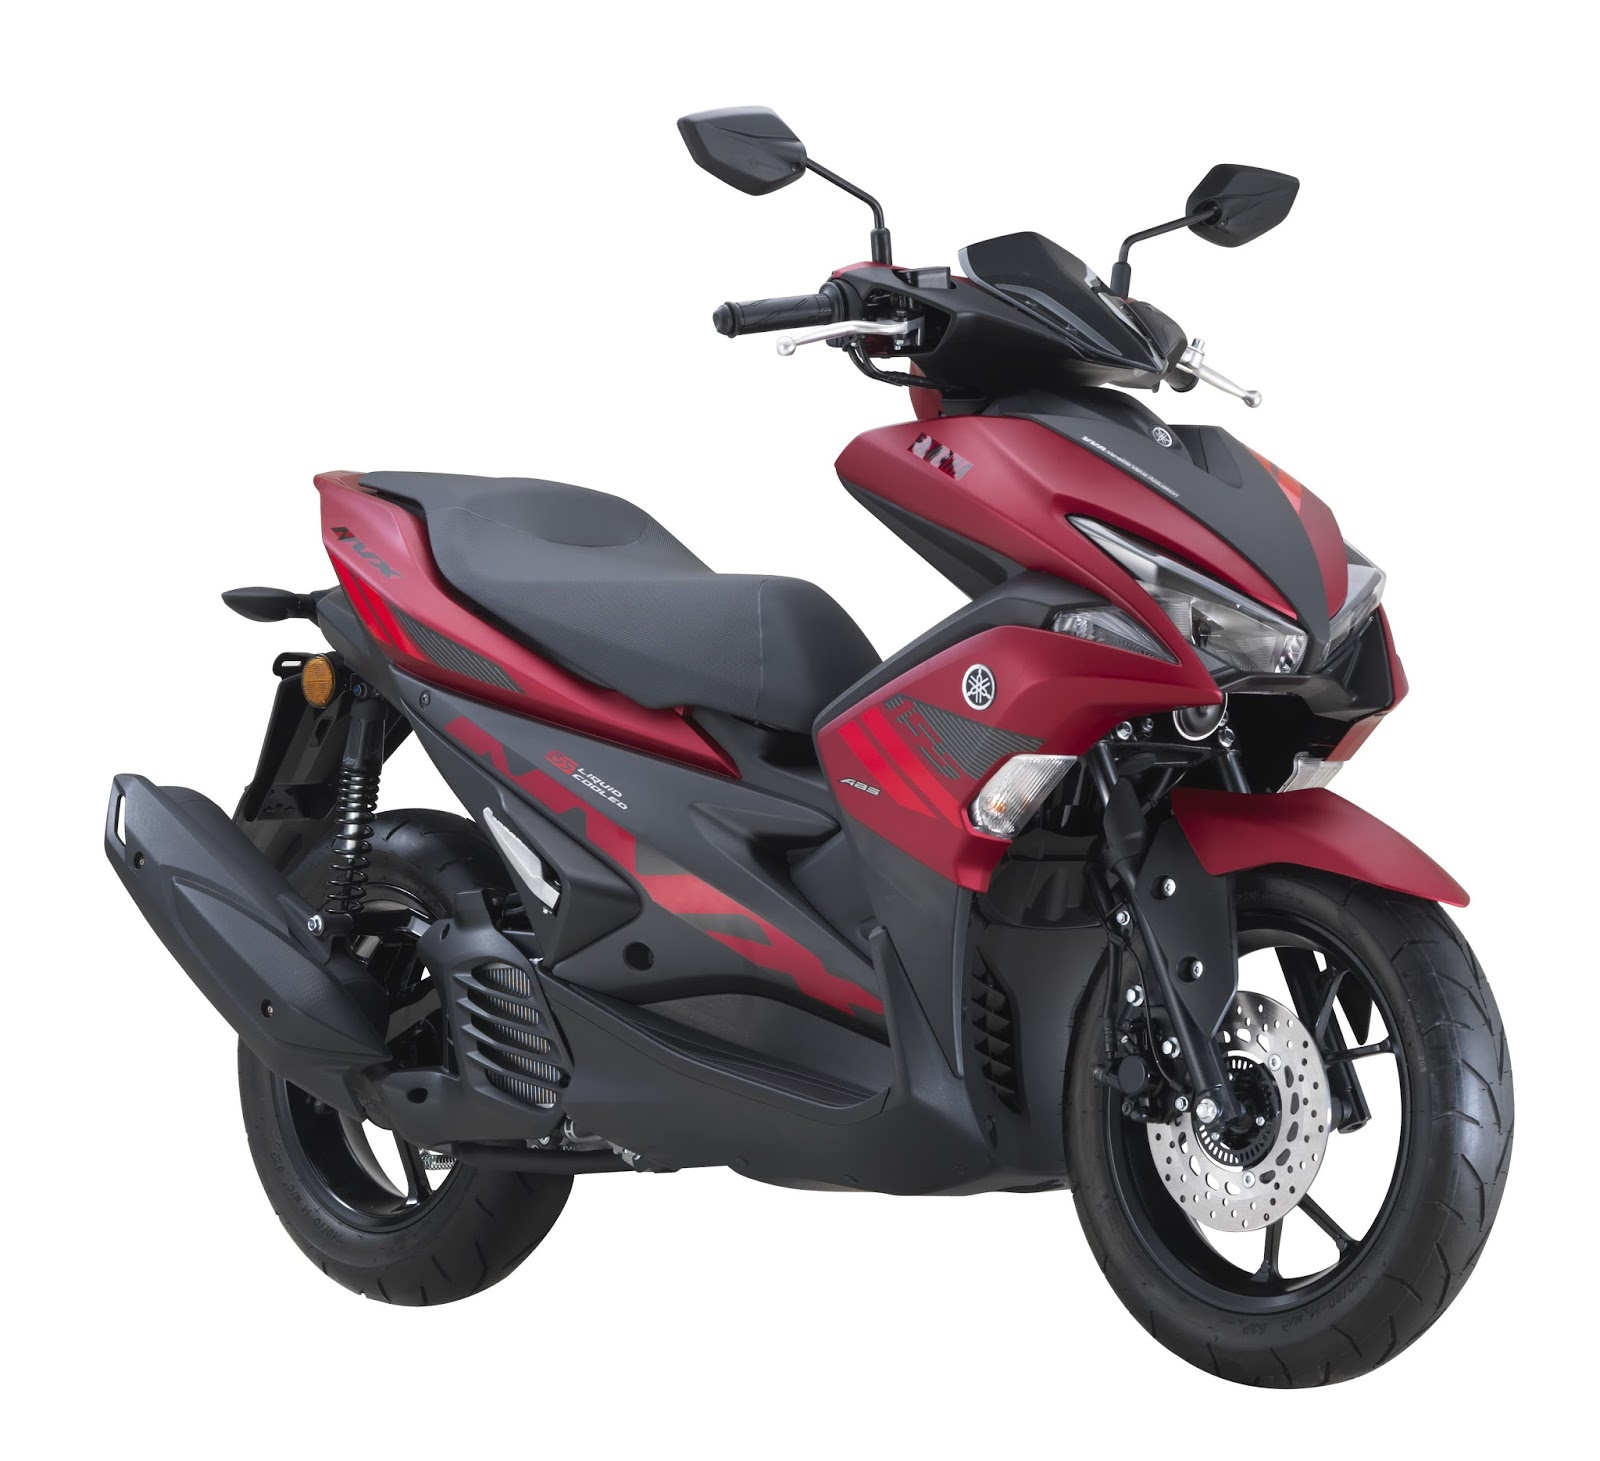 honda ace 100 with Yamaha Nvx 155 Fi Abs on Yamaha Nvx 155 Fi Abs furthermore Twisted Stitch Polaris Rzr Vortex Seats Red Diamond Pair moreover Car Warning Signs Not Ignore together with Yamaha XS Eleven likewise Honda Mobilio Mpv Price In India Review Specifications And Models.